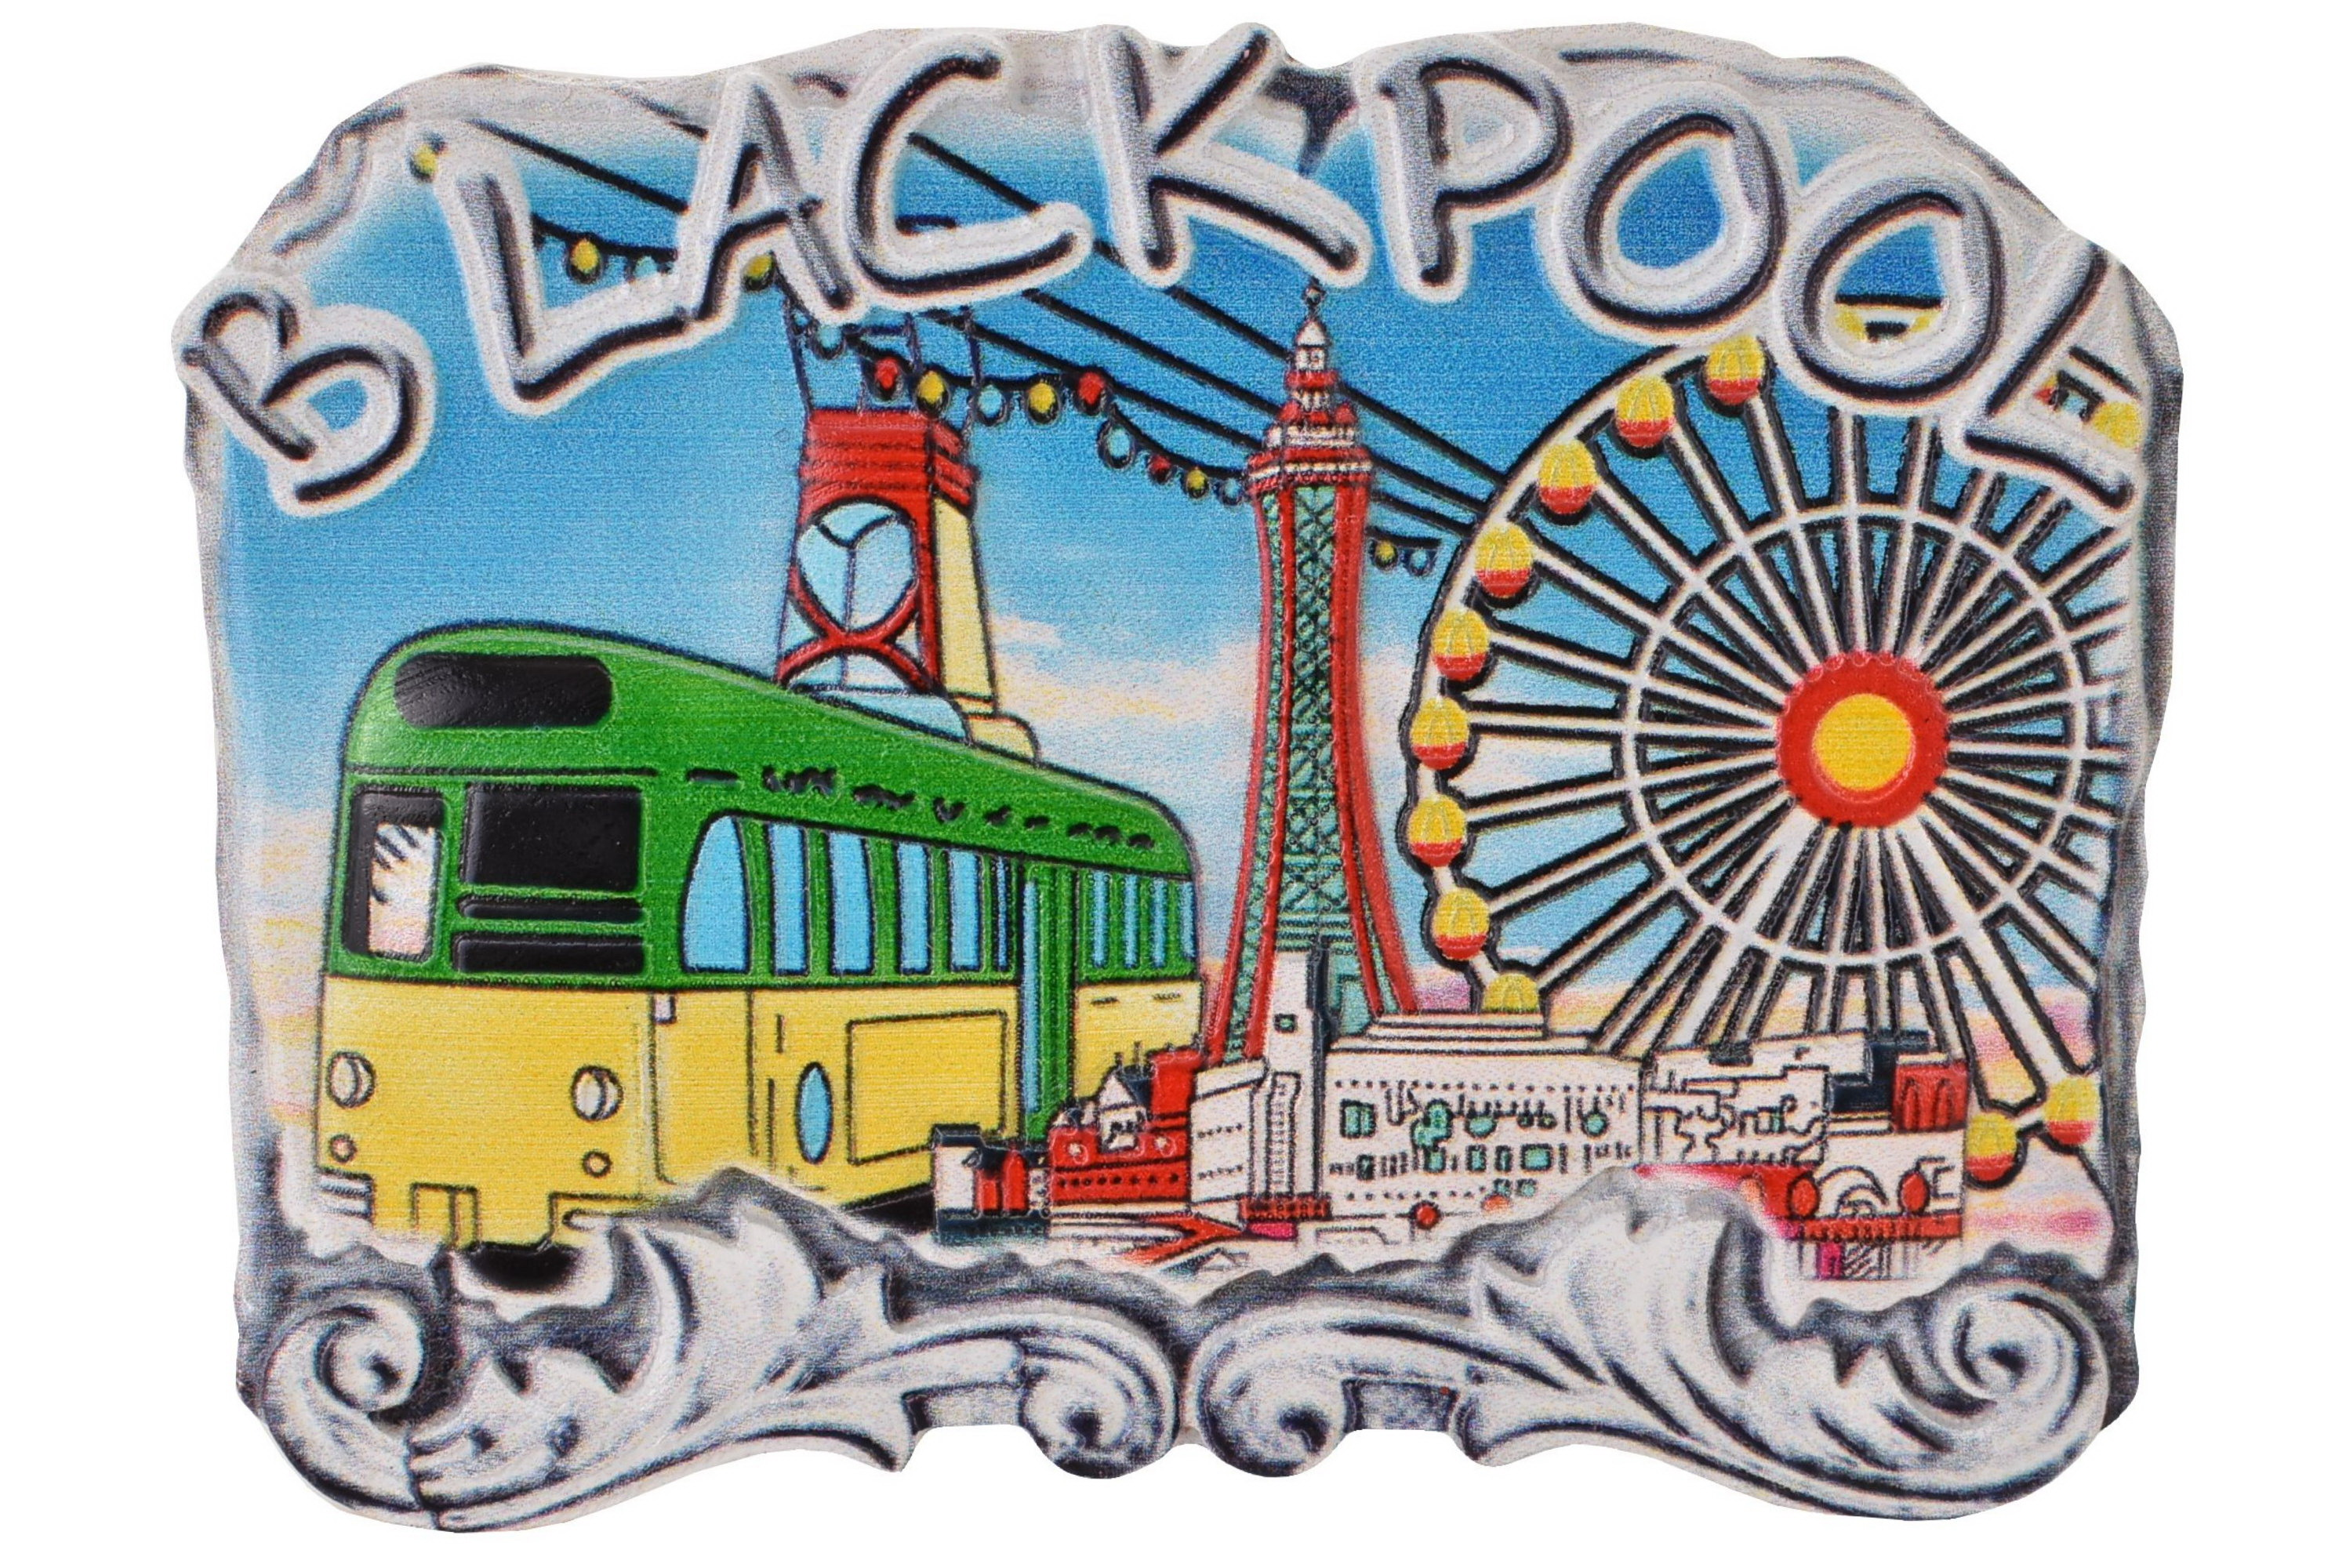 Resin Magnet Blackpool Composite Stone Design